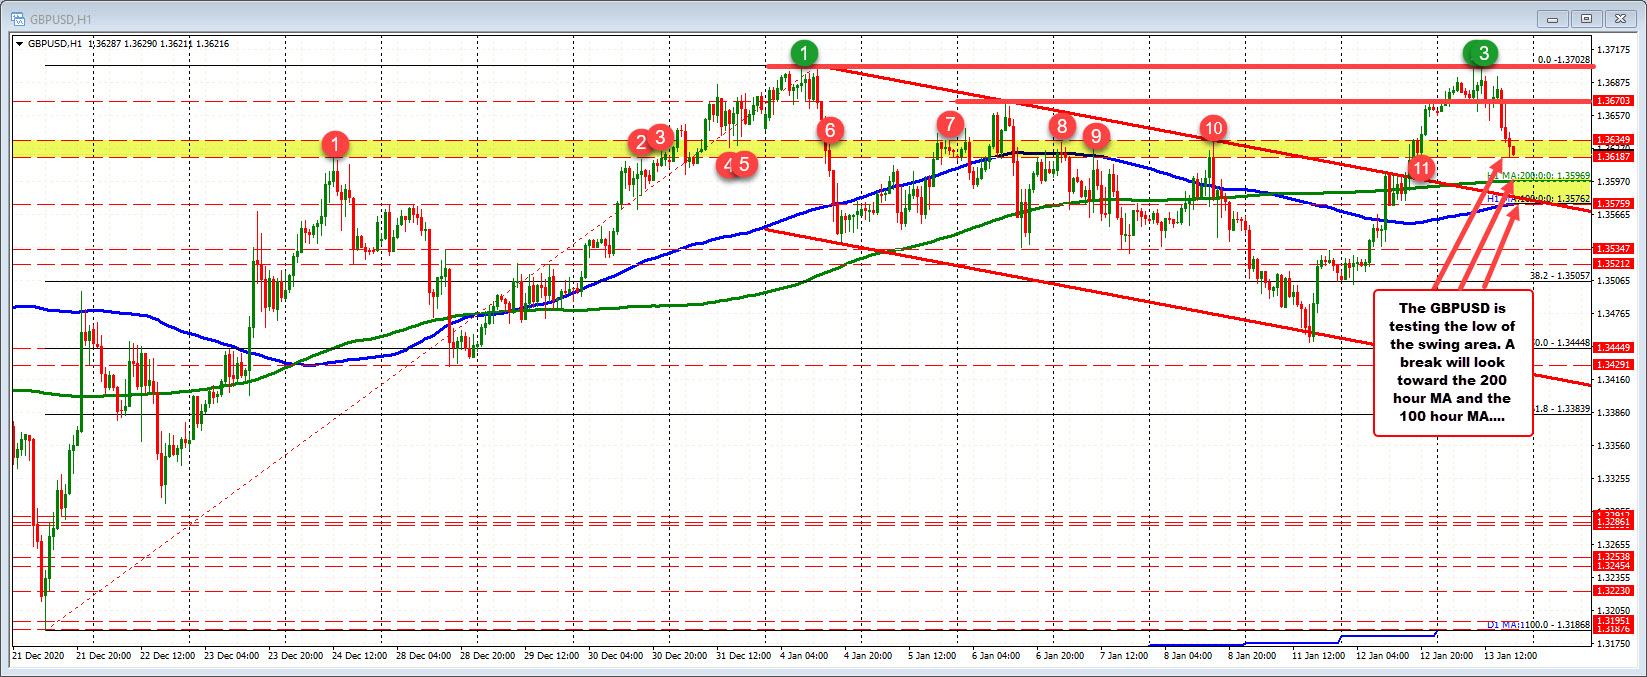 GBPUSD wanders to a new session low